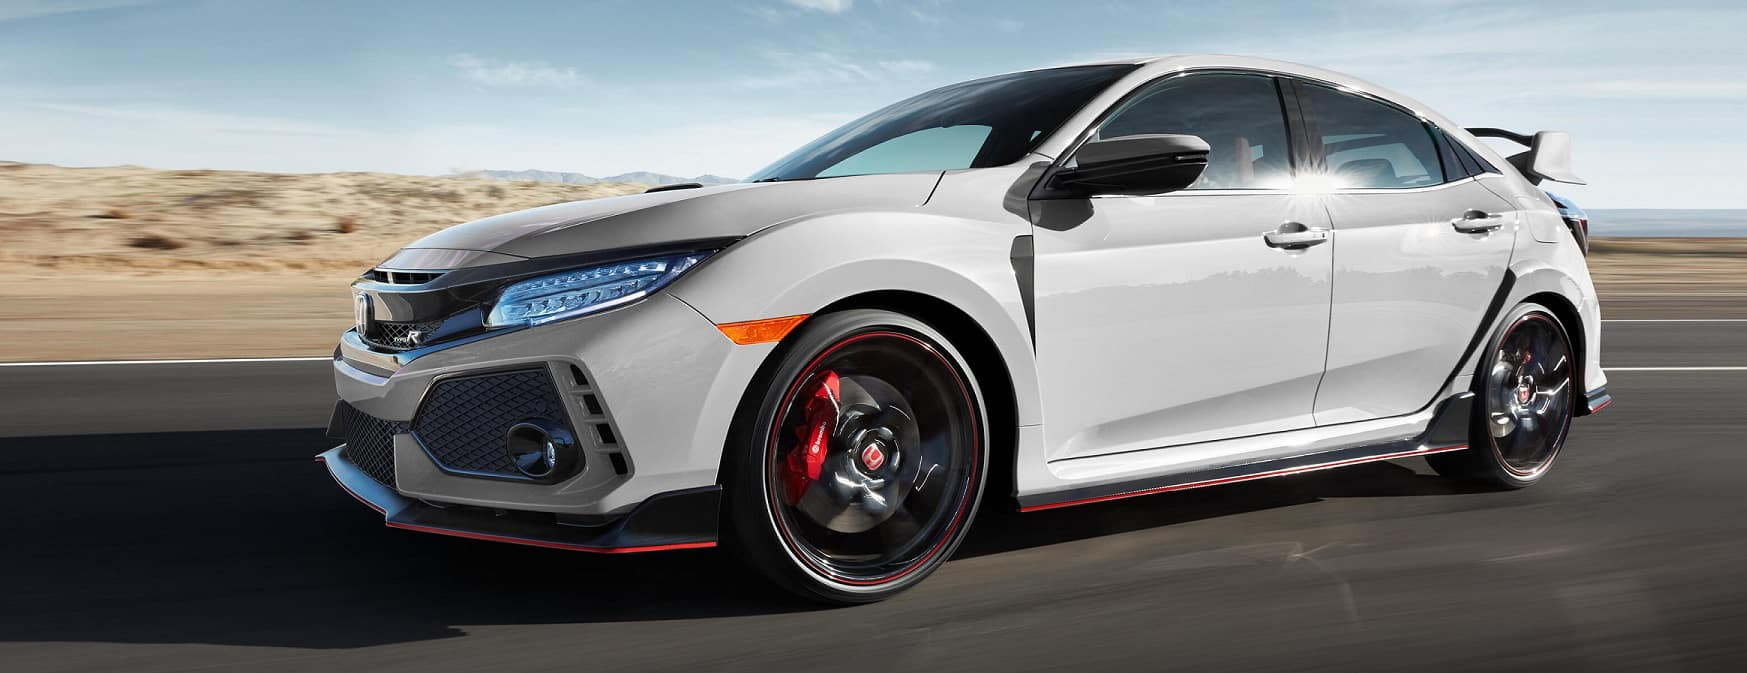 2018 Civic Type R Evanston, IL